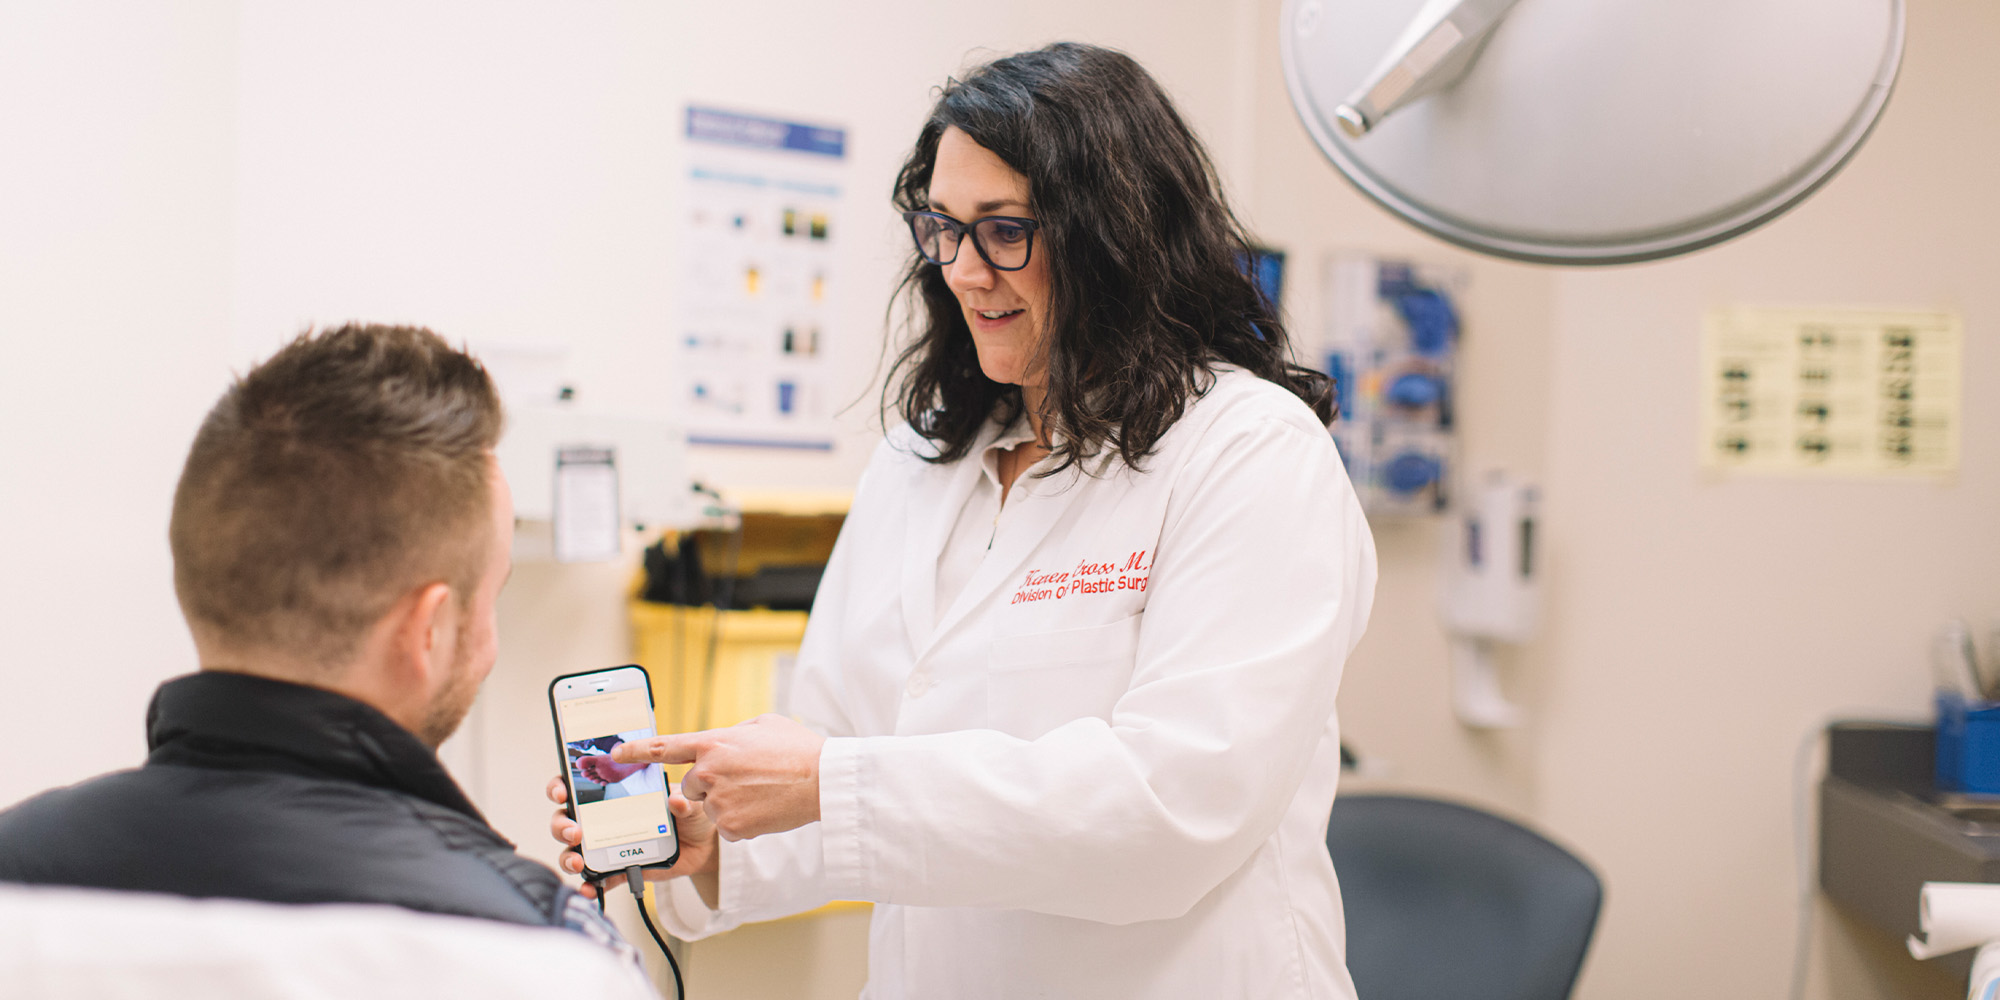 This doctor would rather not do another amputation. So, she invented a monitoring device to help patients.